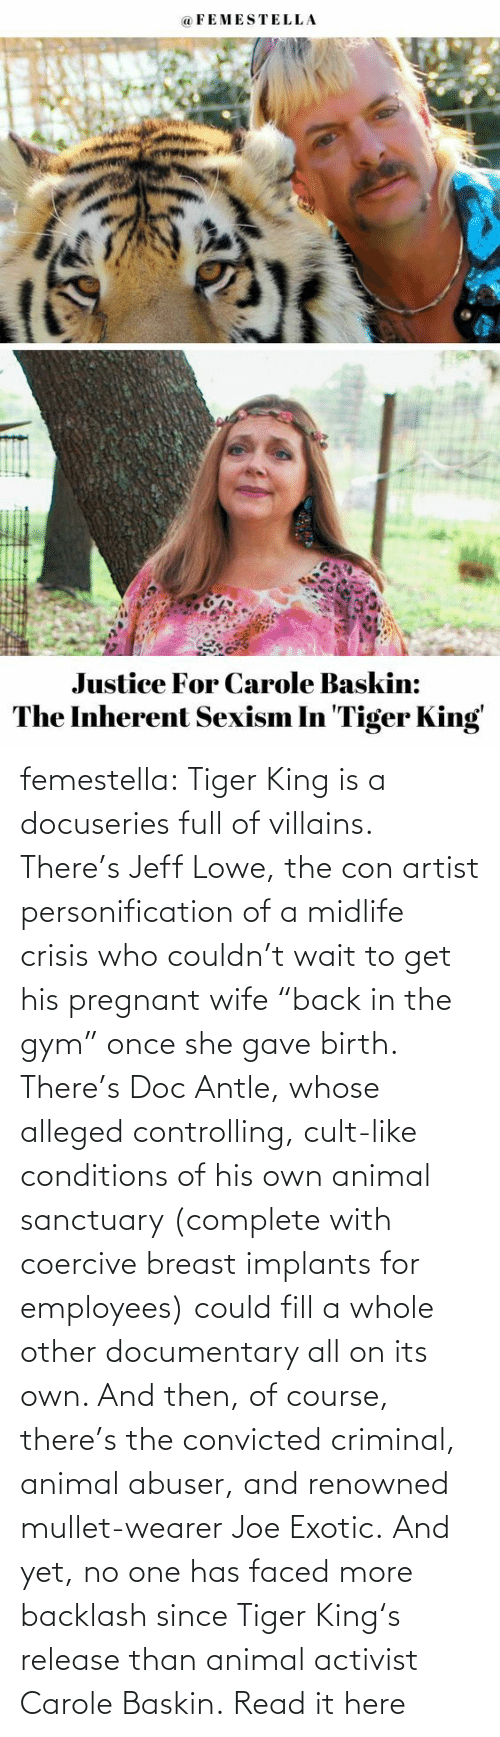 "faced: femestella: Tiger King is a docuseries full of villains. There's Jeff Lowe, the con artist personification of a midlife crisis who couldn't wait to get his pregnant wife ""back in the gym"" once she gave birth. There's Doc Antle, whose alleged controlling, cult-like conditions of his own animal sanctuary (complete with coercive breast implants for employees) could fill a whole other documentary all on its own. And then, of course, there's the convicted criminal, animal abuser, and renowned mullet-wearer Joe Exotic. And yet, no one has faced more backlash since Tiger King's release than animal activist Carole Baskin. Read it here"